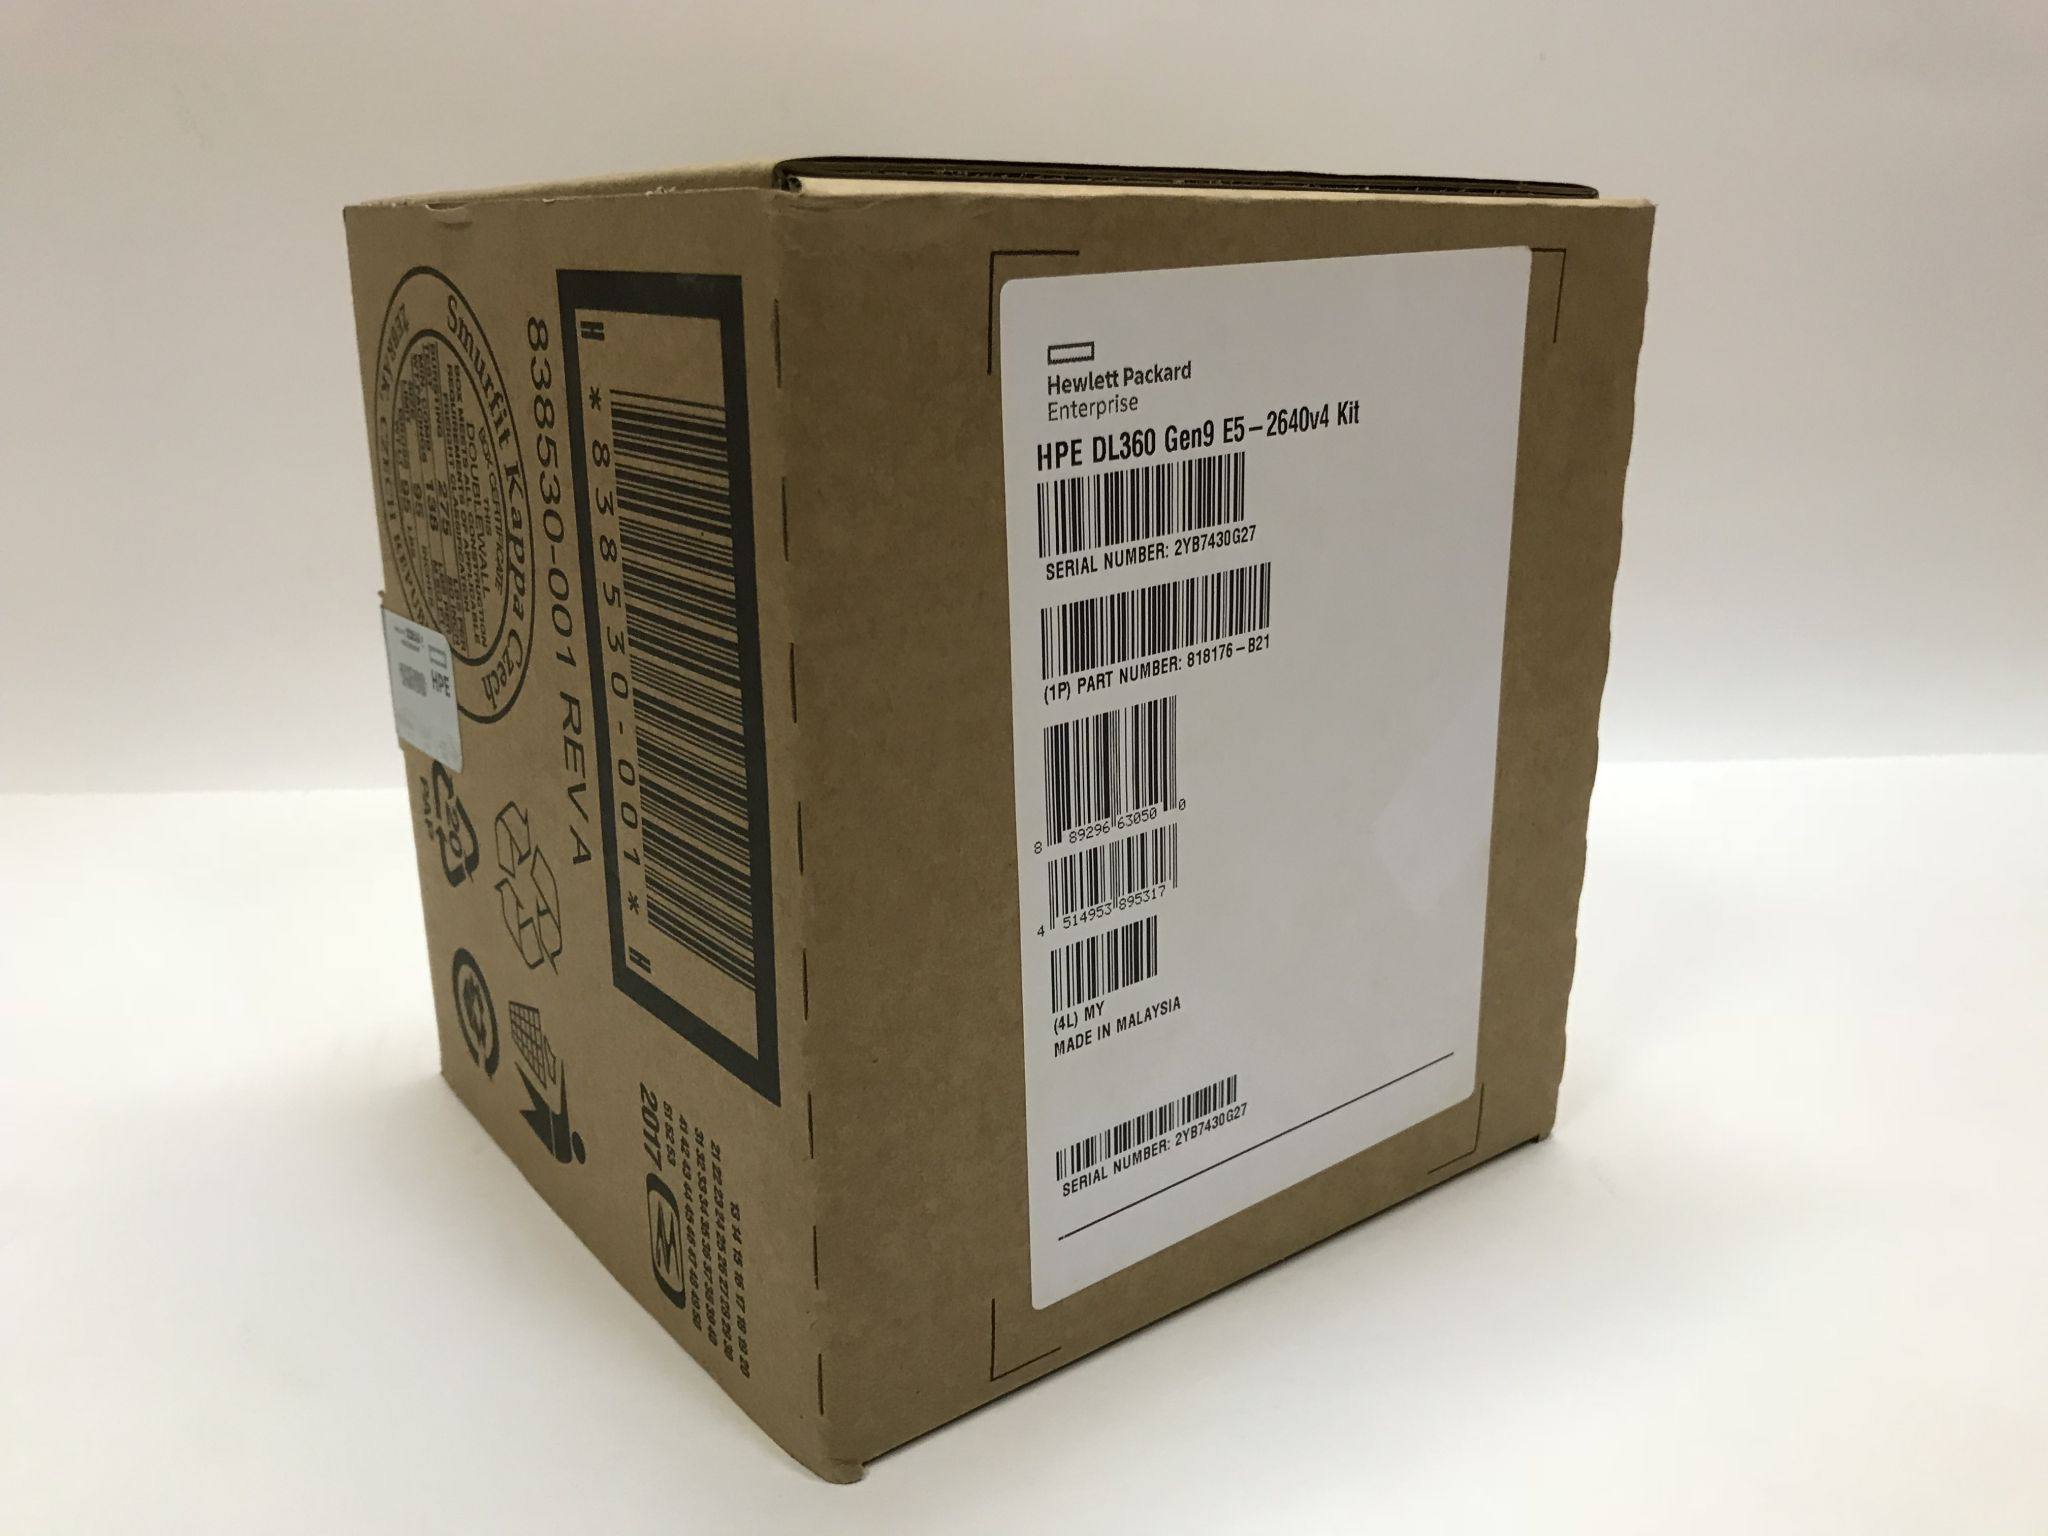 Процессор HP DL360 Gen9 Intel Xeon E5-2640v4